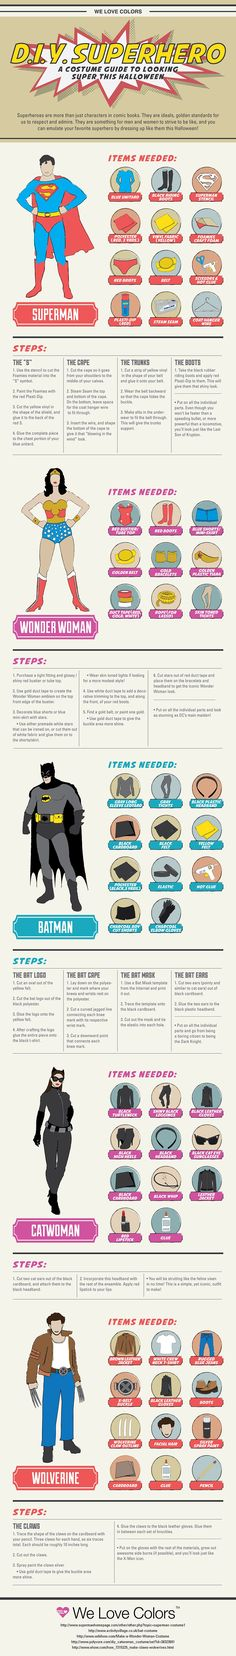 Prepare for Halloween With These DIY Superhero Costumes